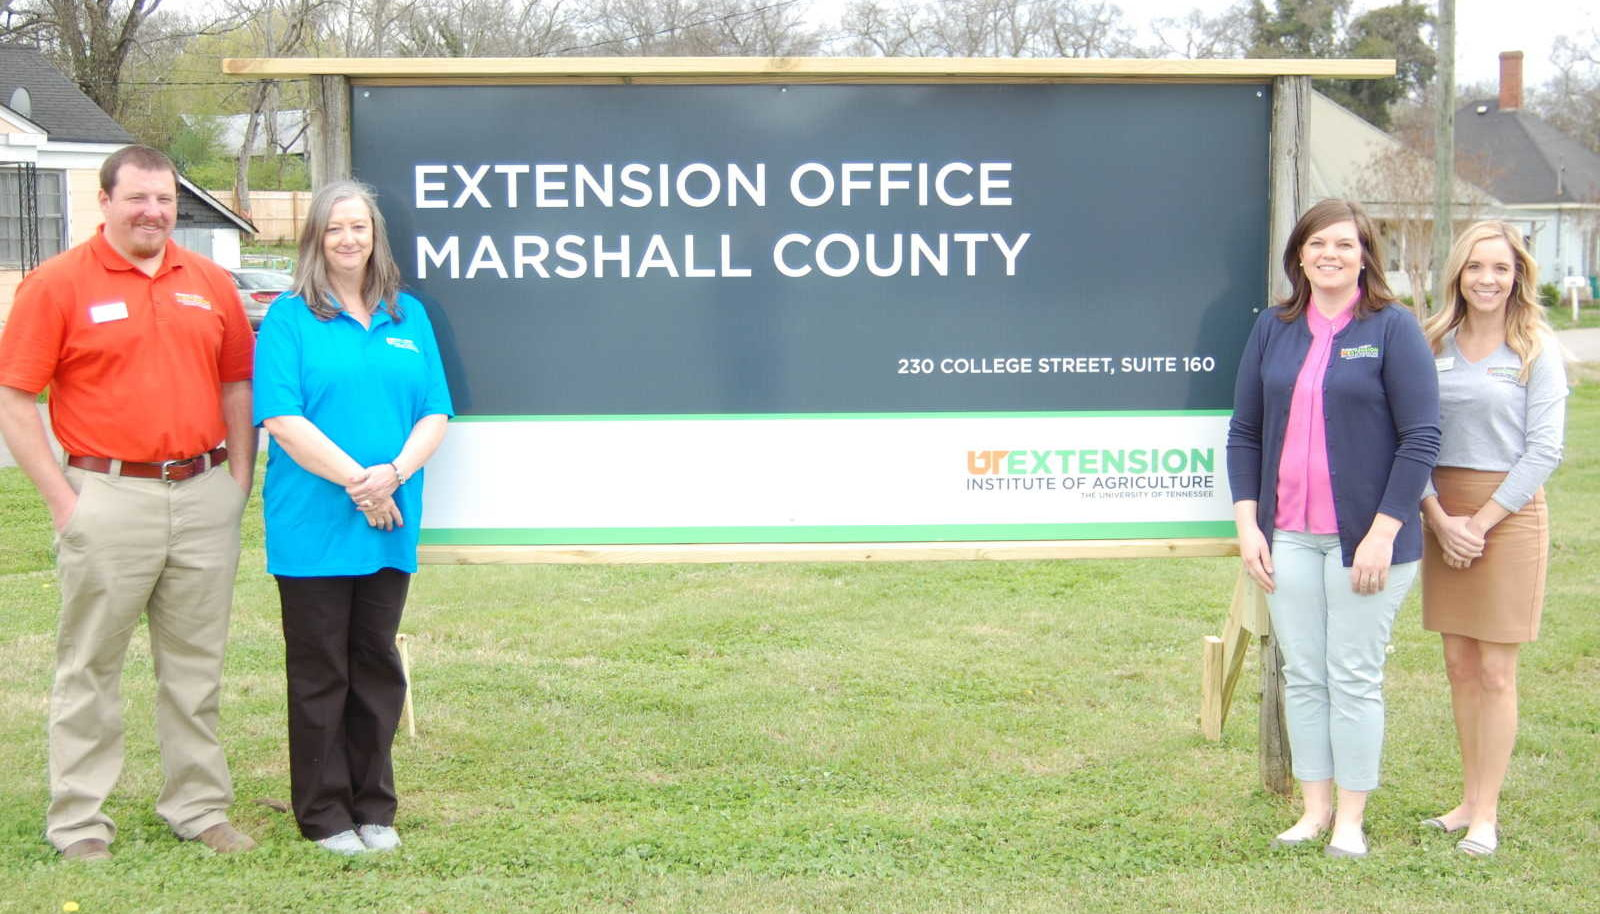 Marshall County Extension Office group photo